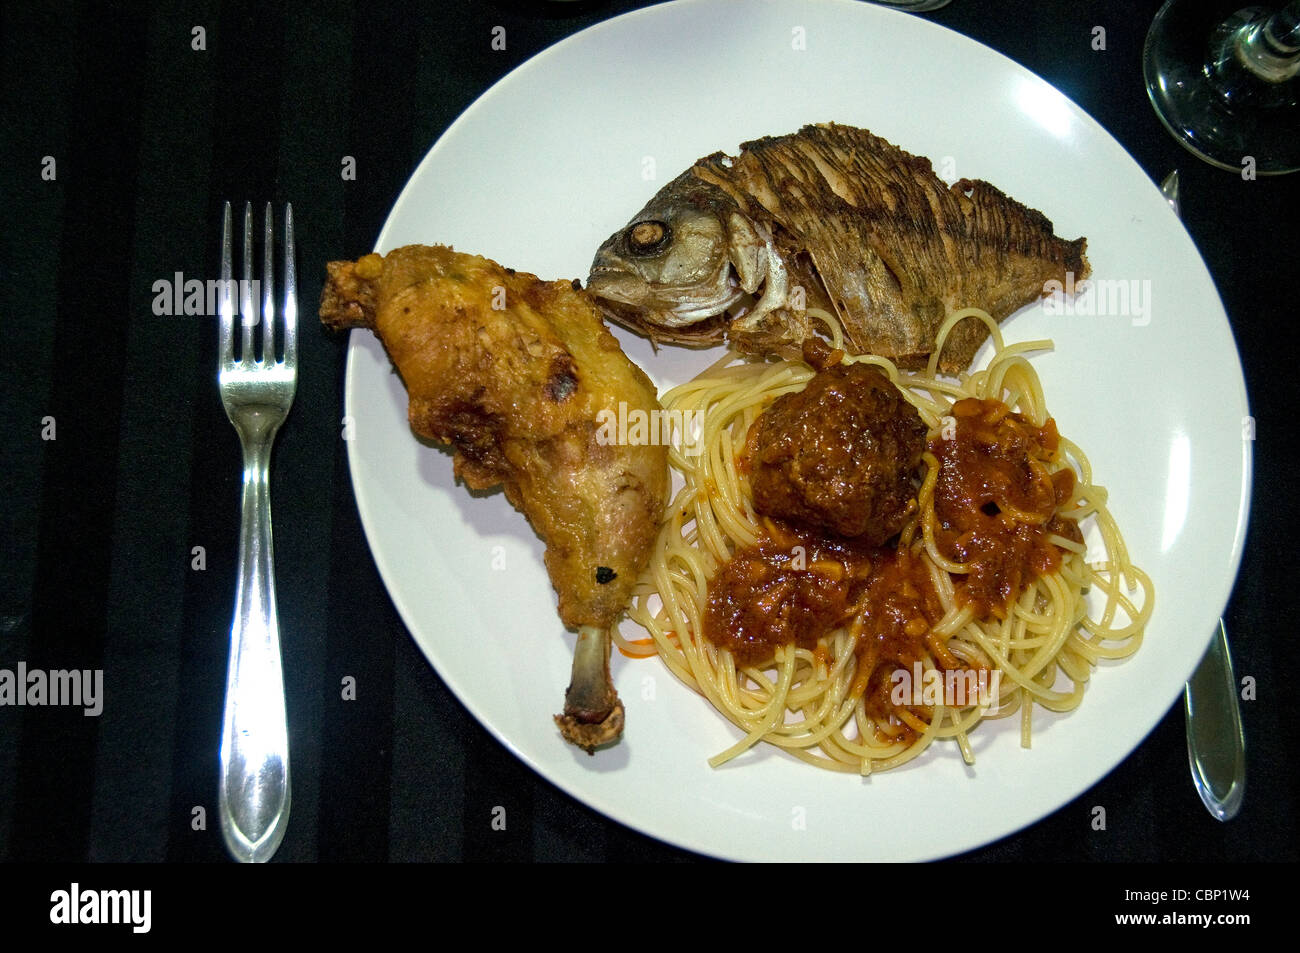 An Amazon River luxury fishing and ecotour yacht operation serves a variety of meats for dinner including piranha - Stock Image